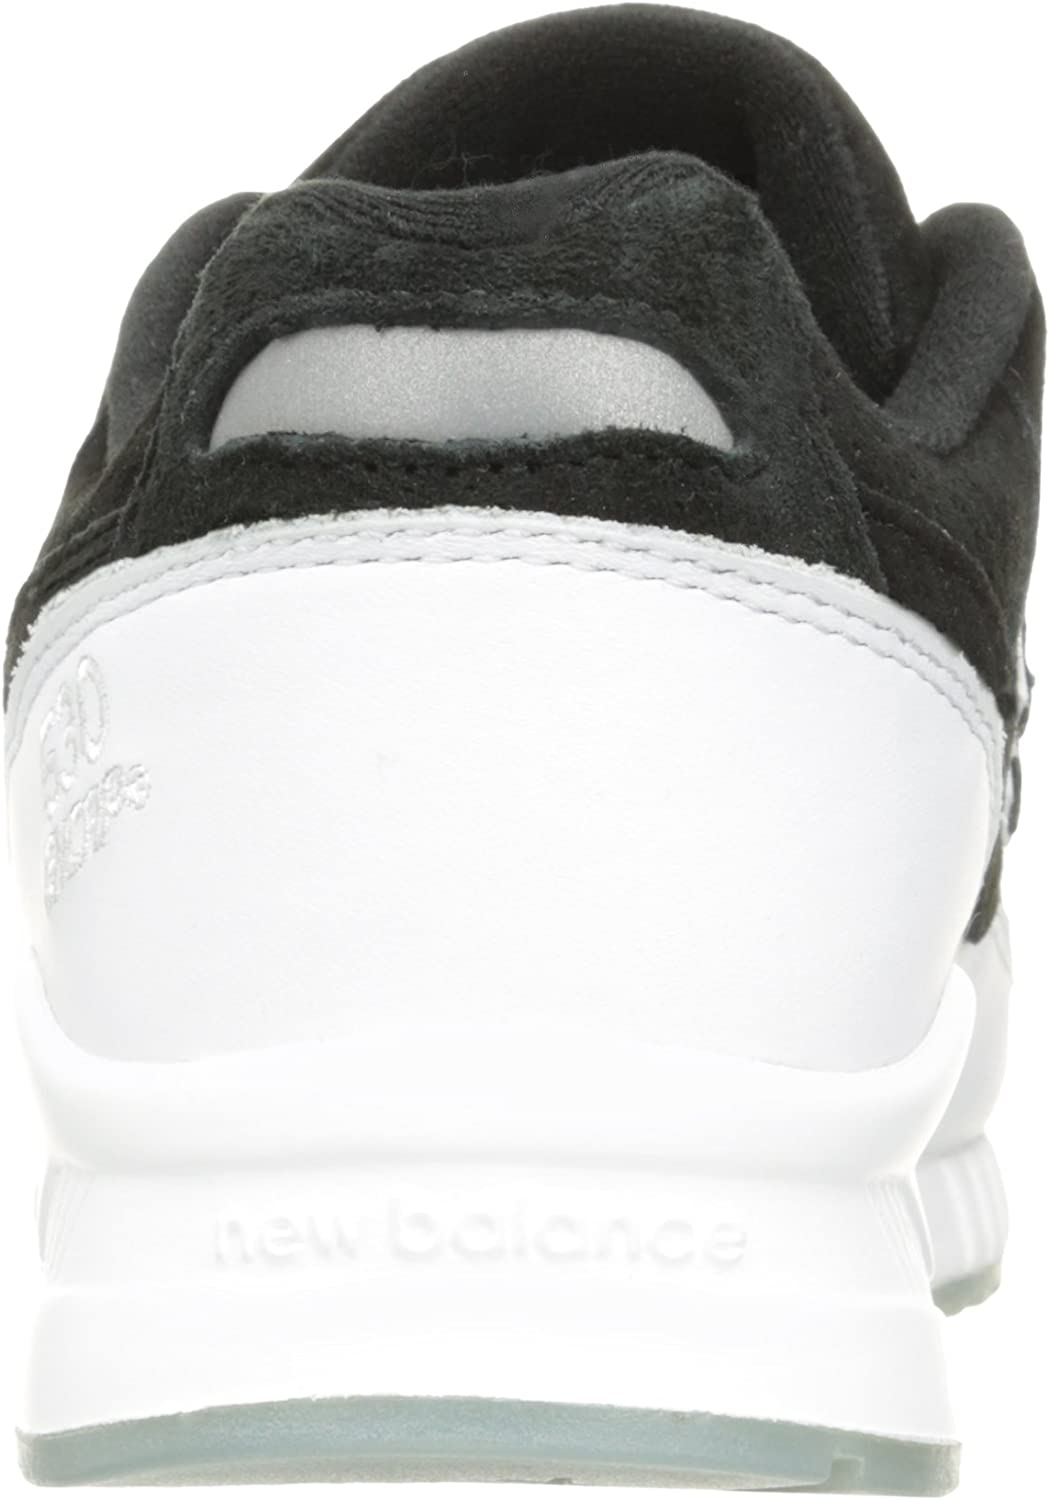 New Balance Mens 530 Summer Waves Collection Lifestyle Sneaker